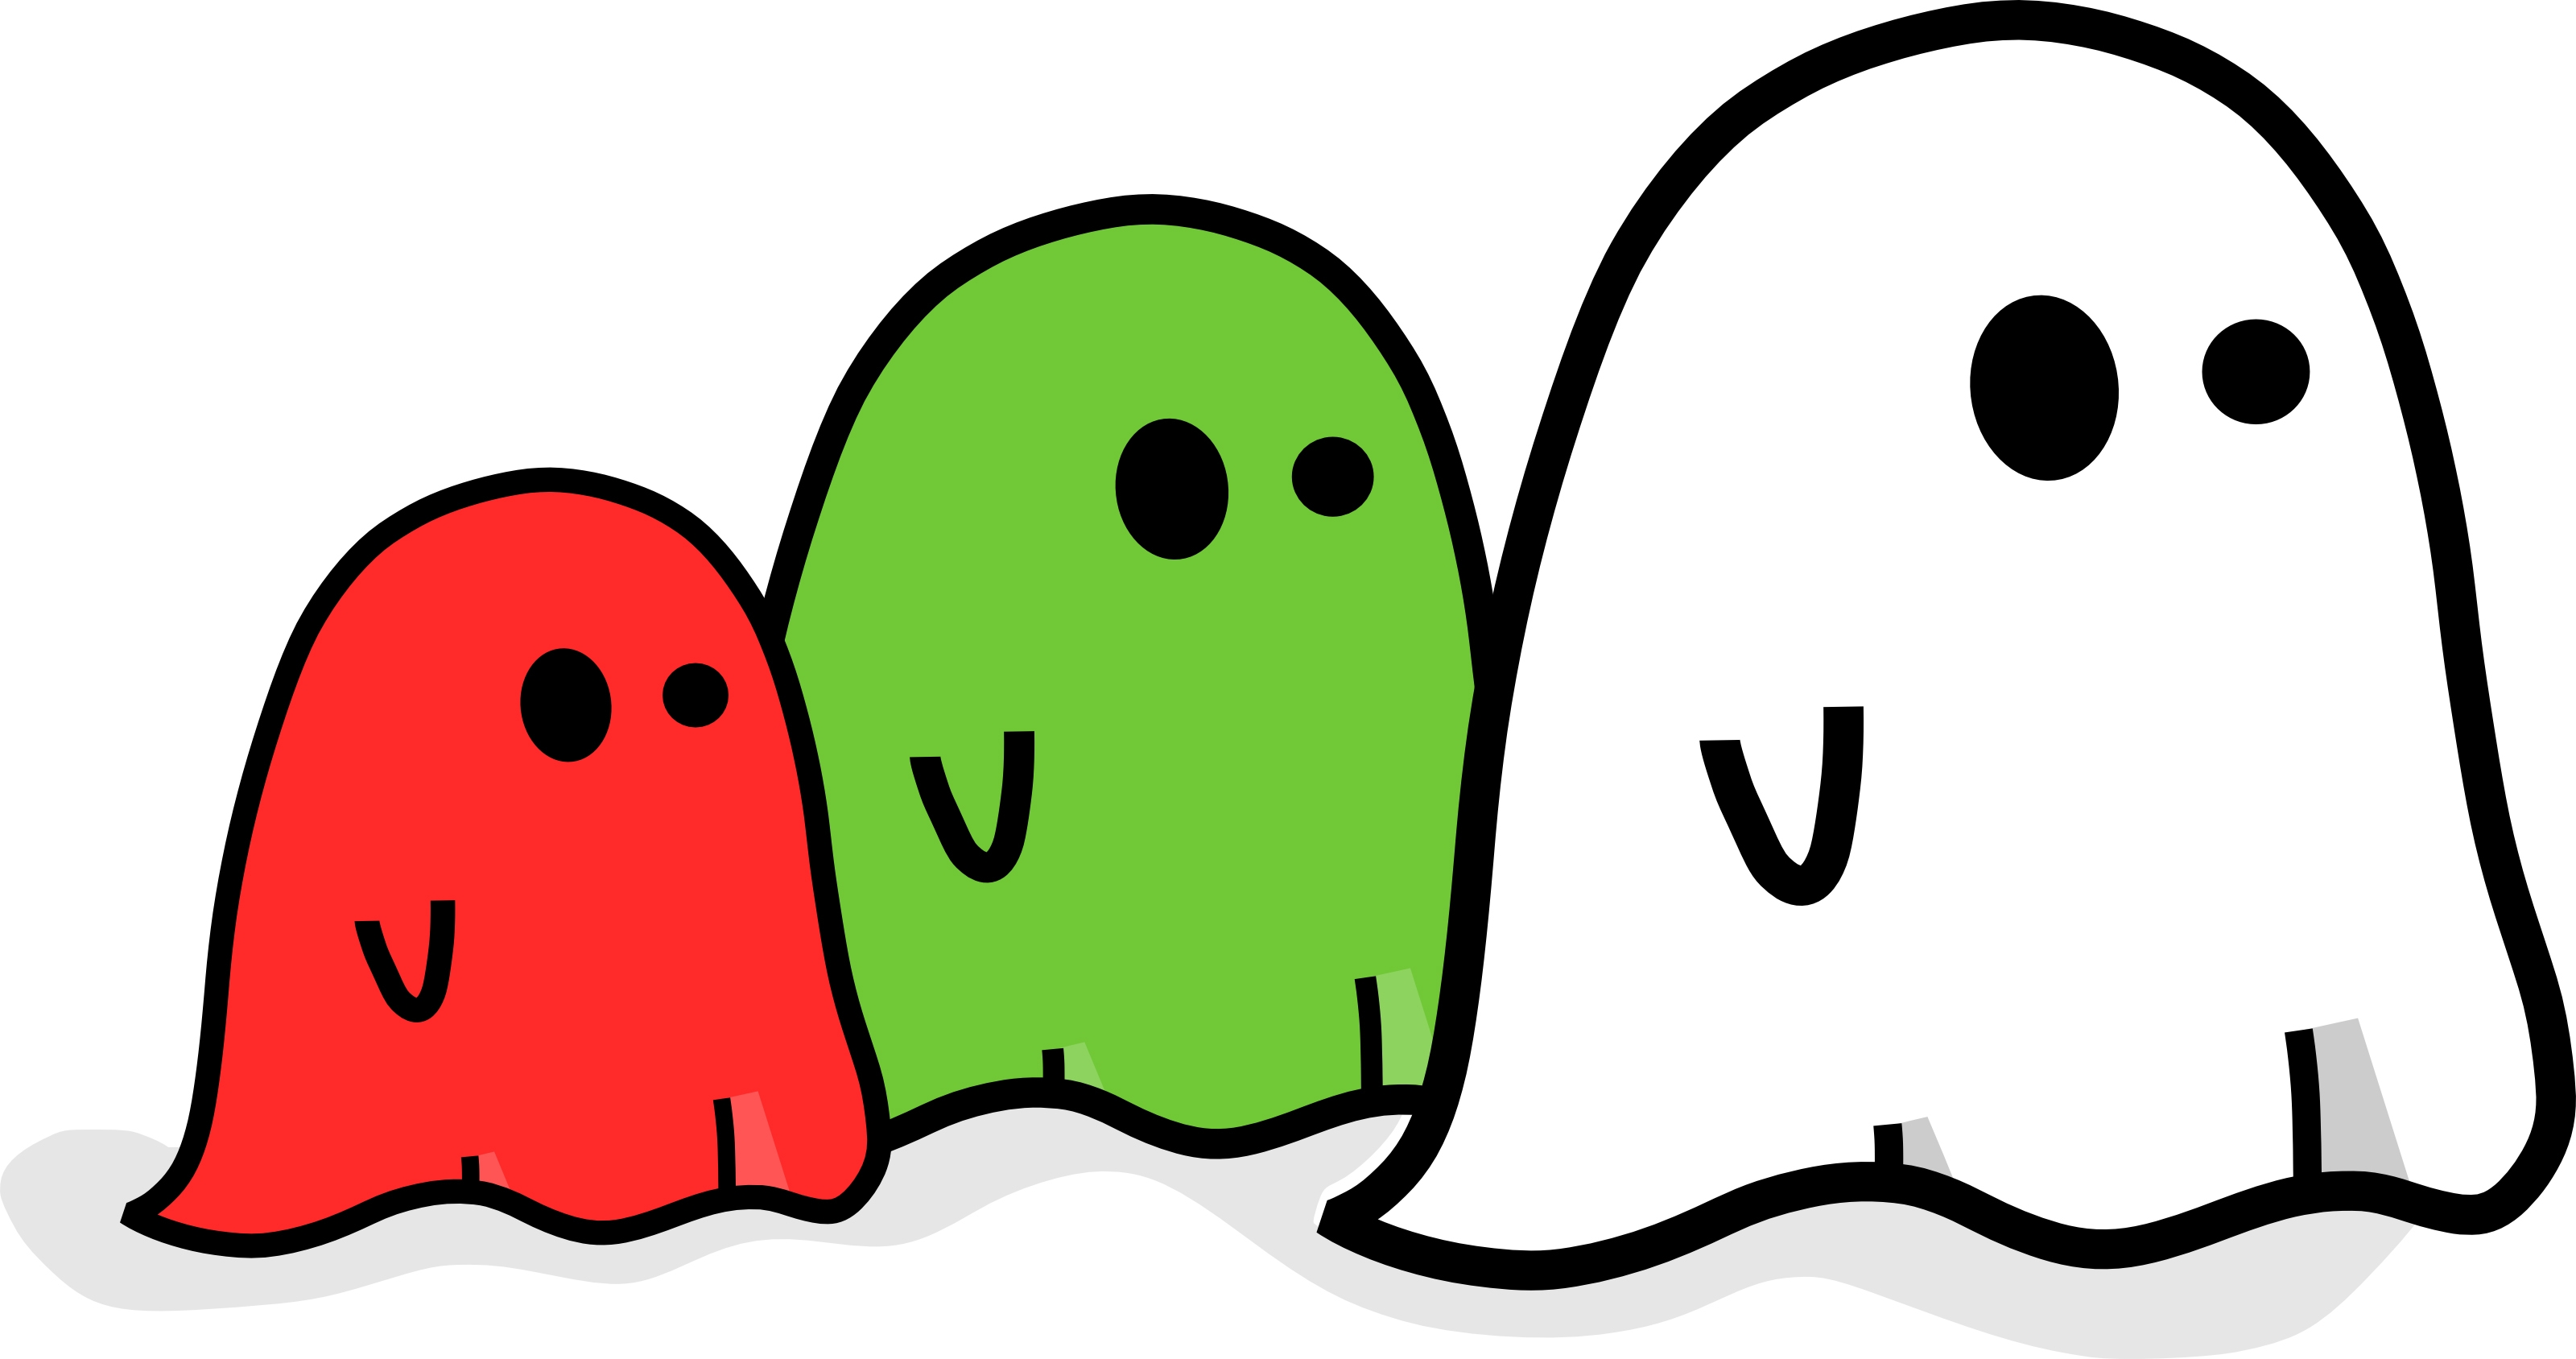 cute ghost clipart at getdrawings com free for personal use cute rh getdrawings com cute ghost clipart black and white cute ghost clipart